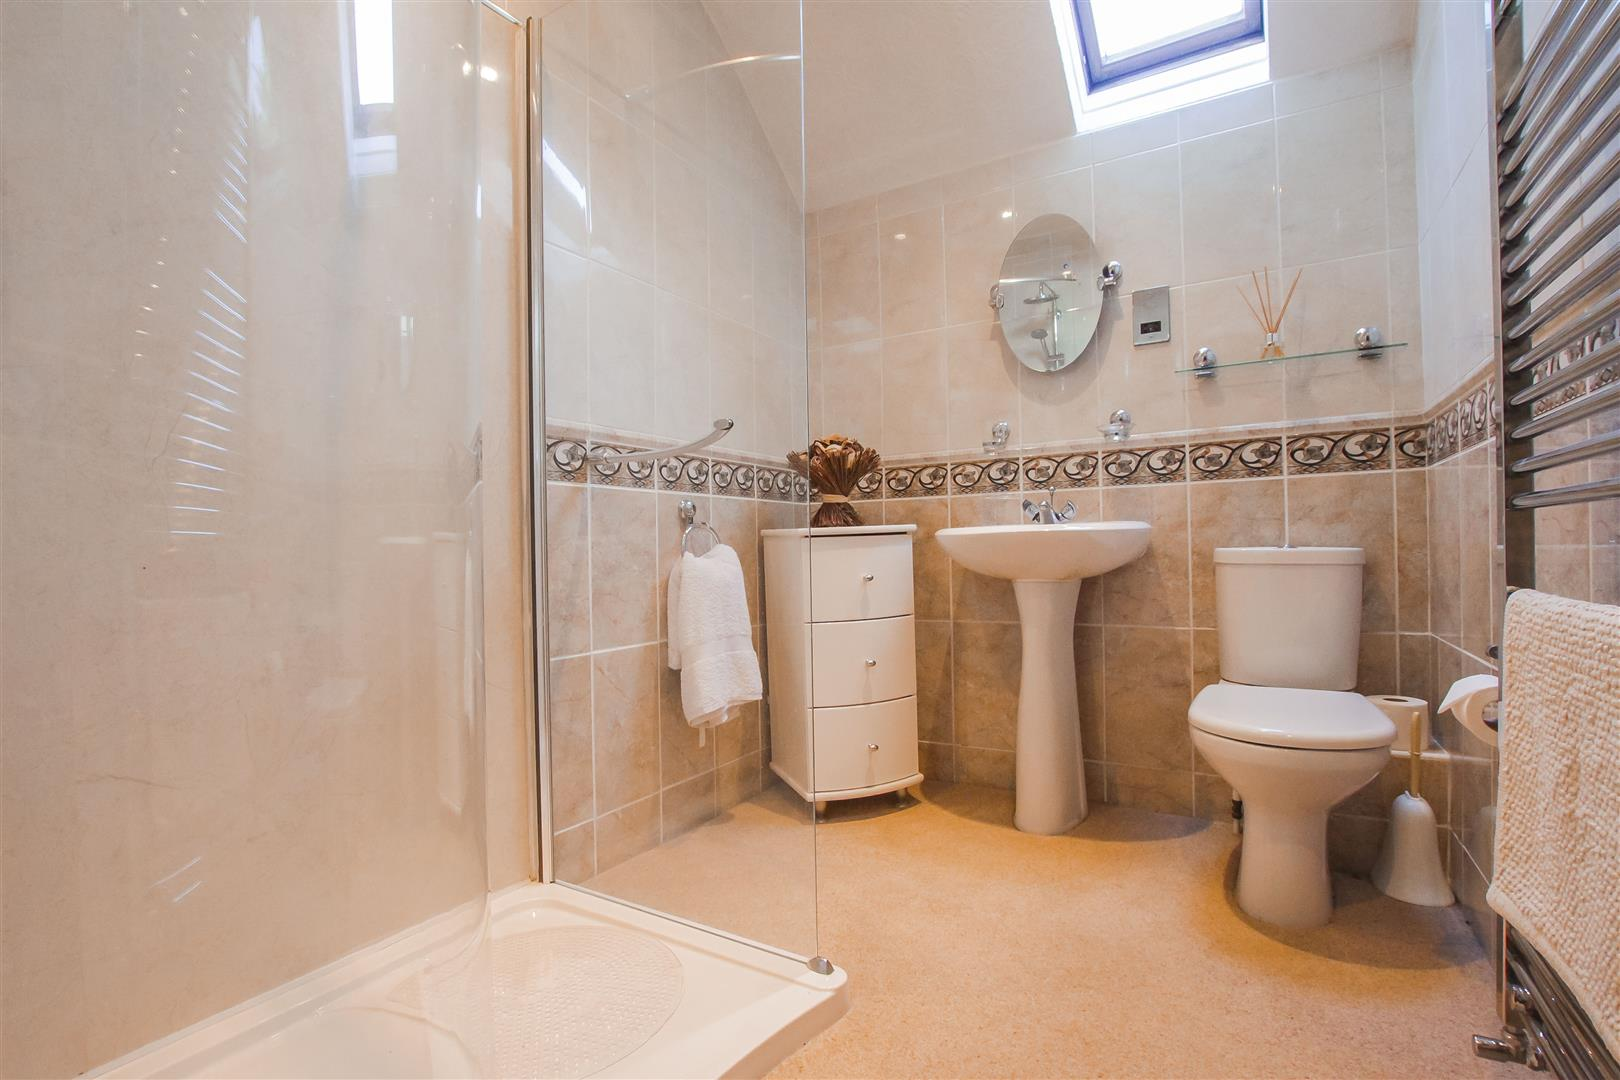 4 Bedroom Detached House For Sale - Image 14